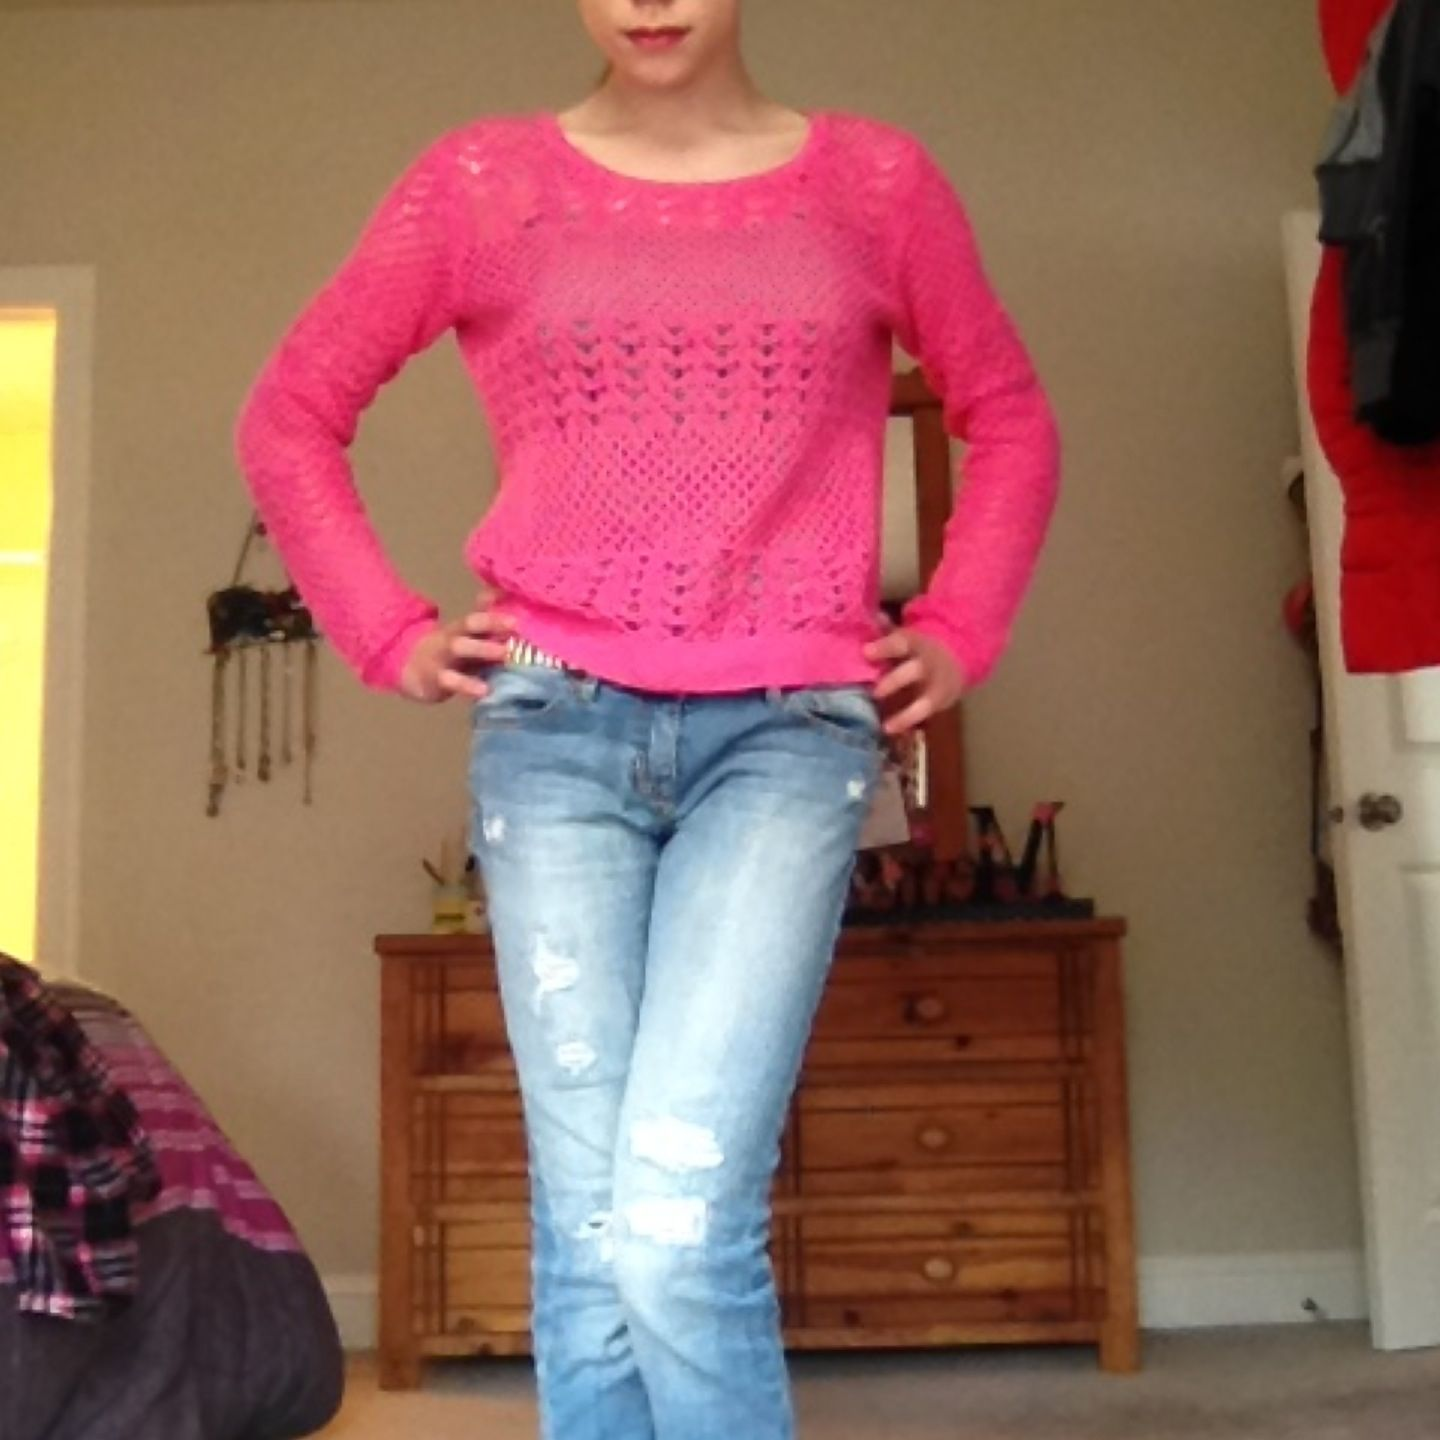 Green Camisole Under Pink Sweater Ripped Jeans And Fun Neon Zebra